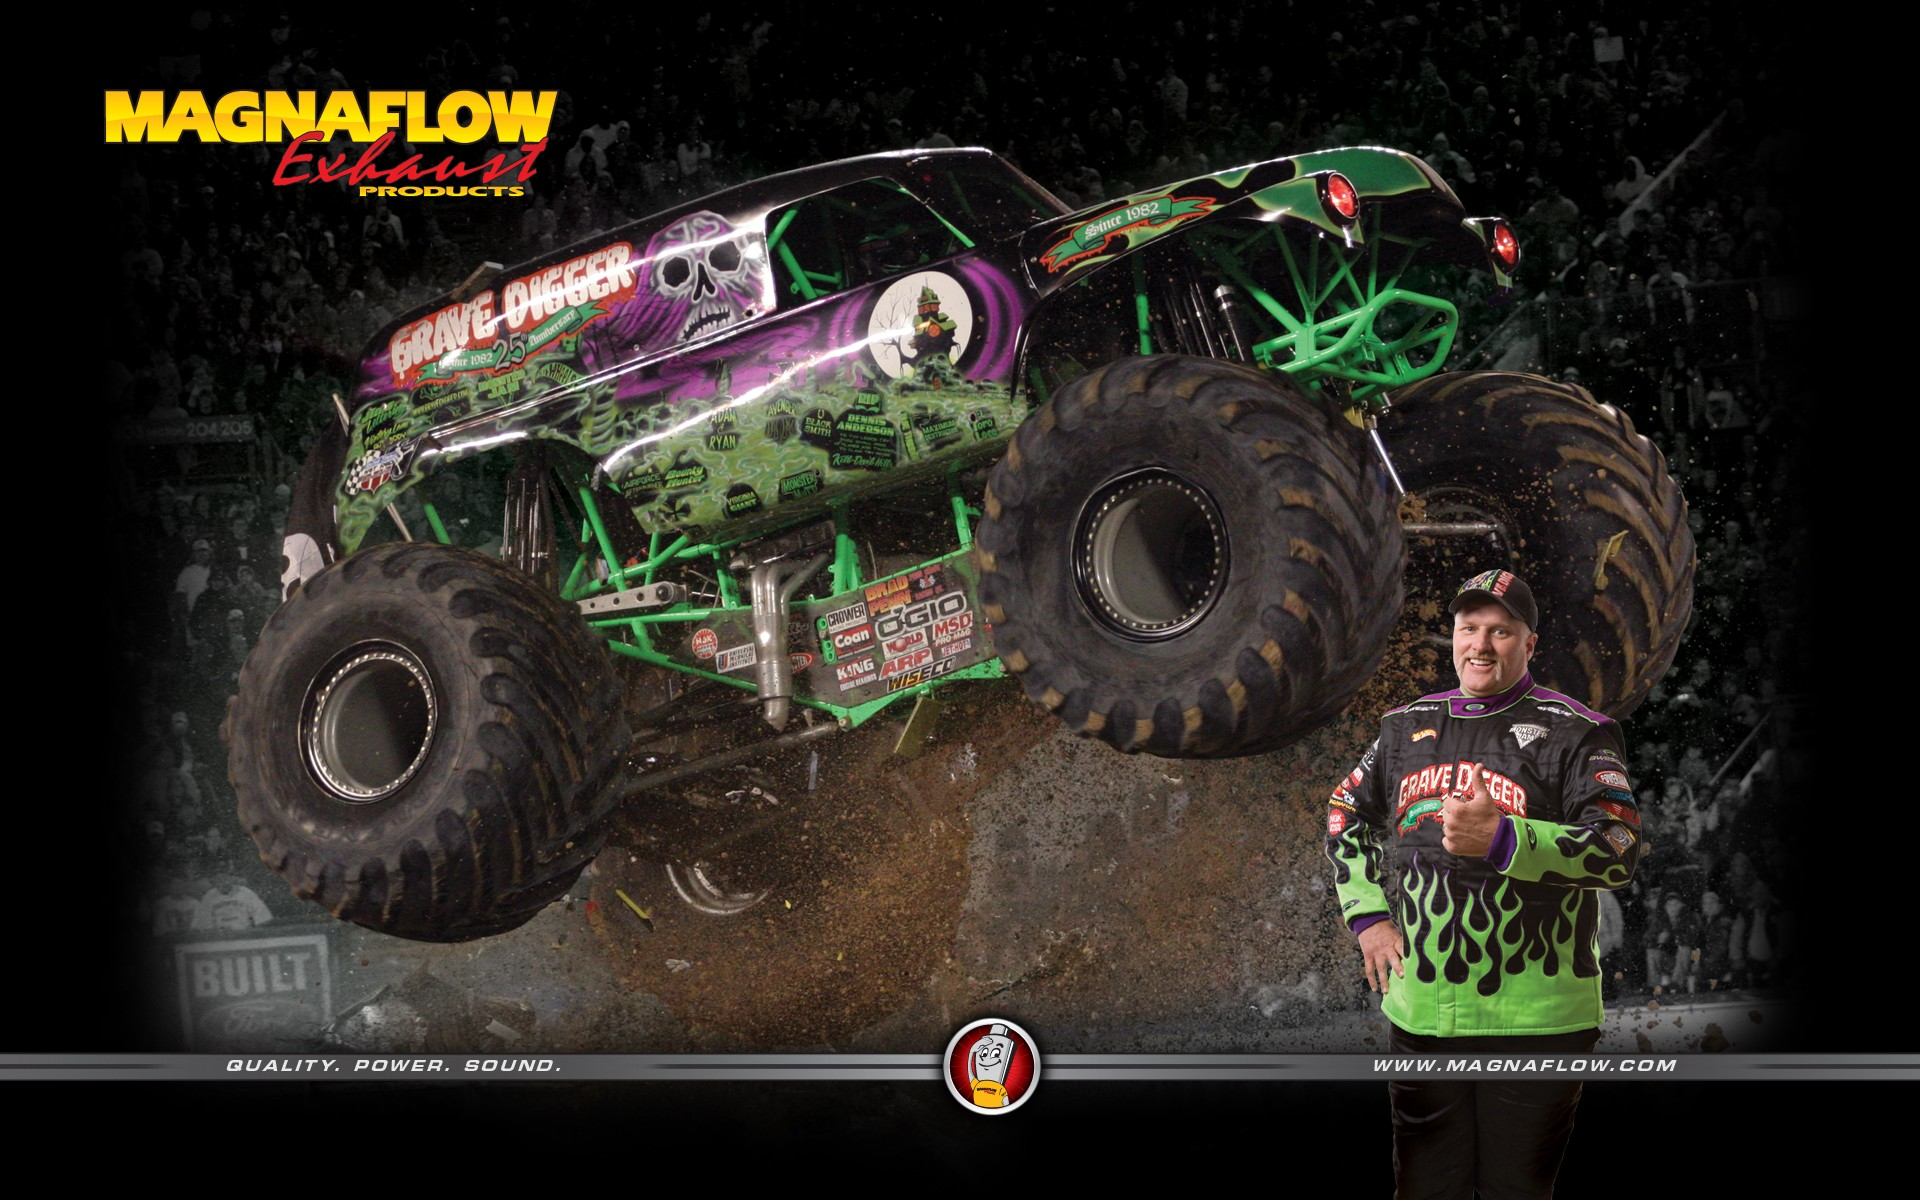 monster truck 1 with Sports Monster Trucks Grave Digger on Kokosnuss 1 likewise Images additionally 2016 06 04 0745 2651087740 together with Stallion1 additionally ments.